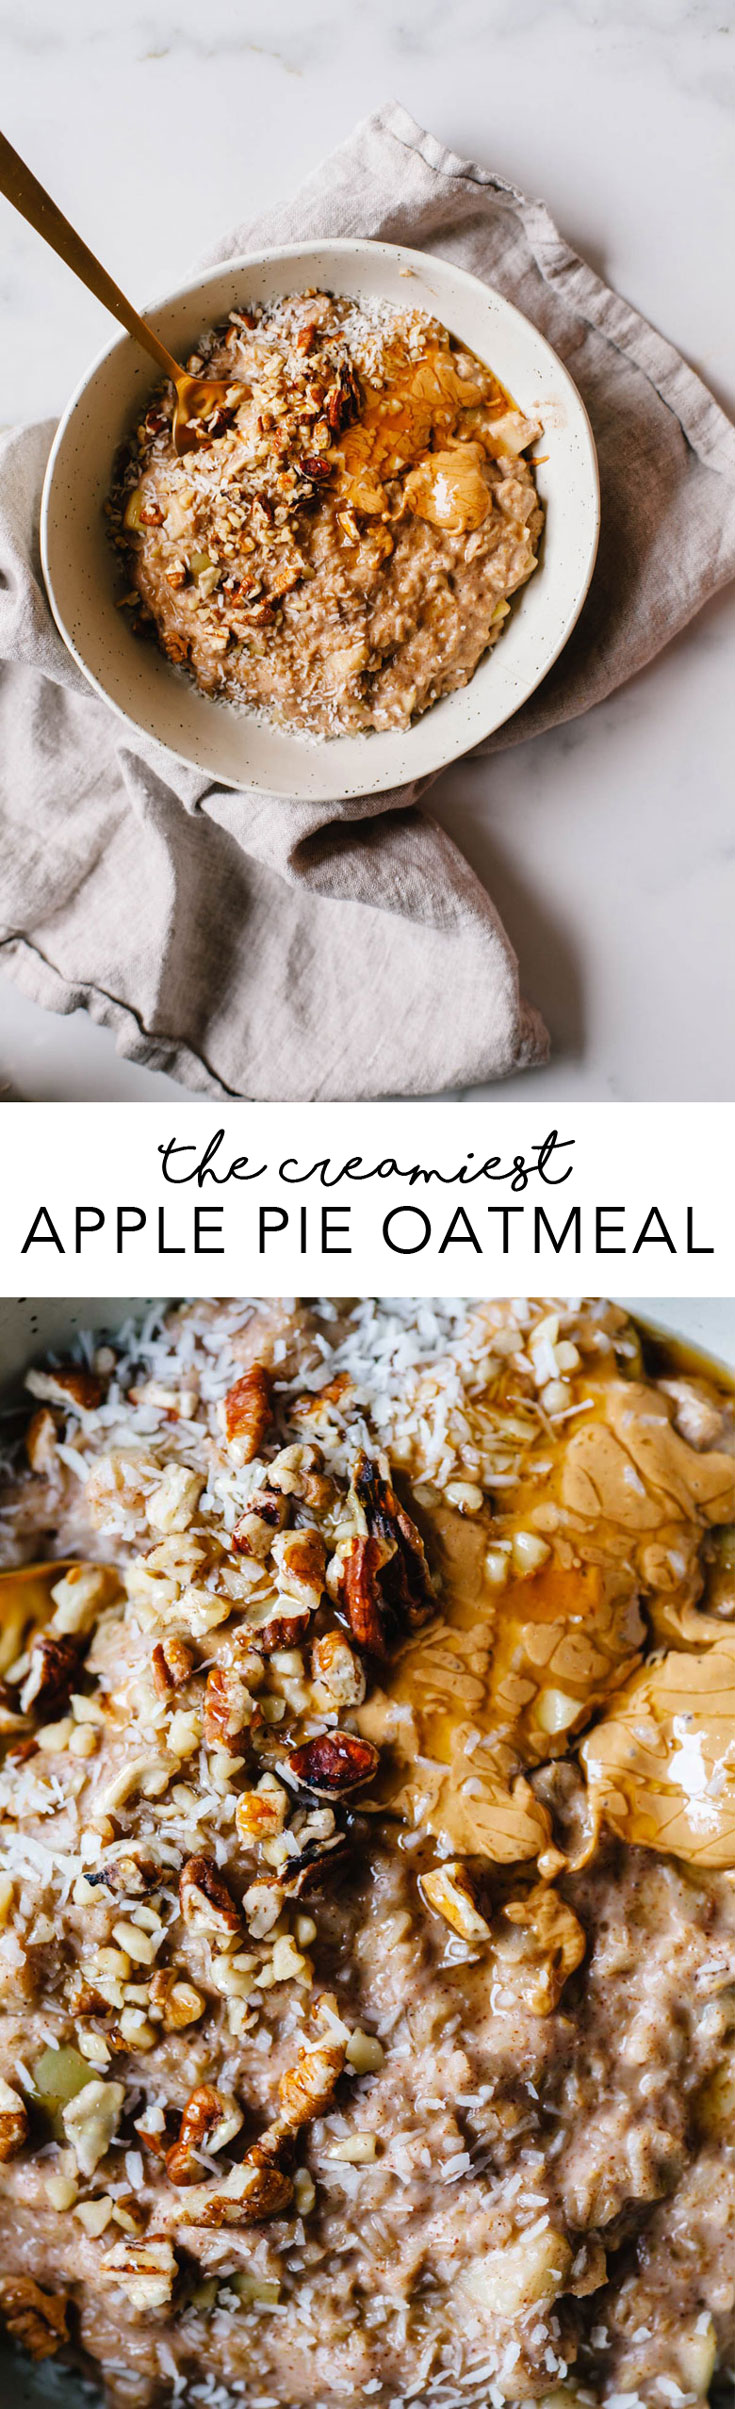 Learn how to make the creamiest apple pie oatmeal with no recipe at all! Cooking intuitively an be easy! #oatmeal #healthy #recipe | Brewing Happiness